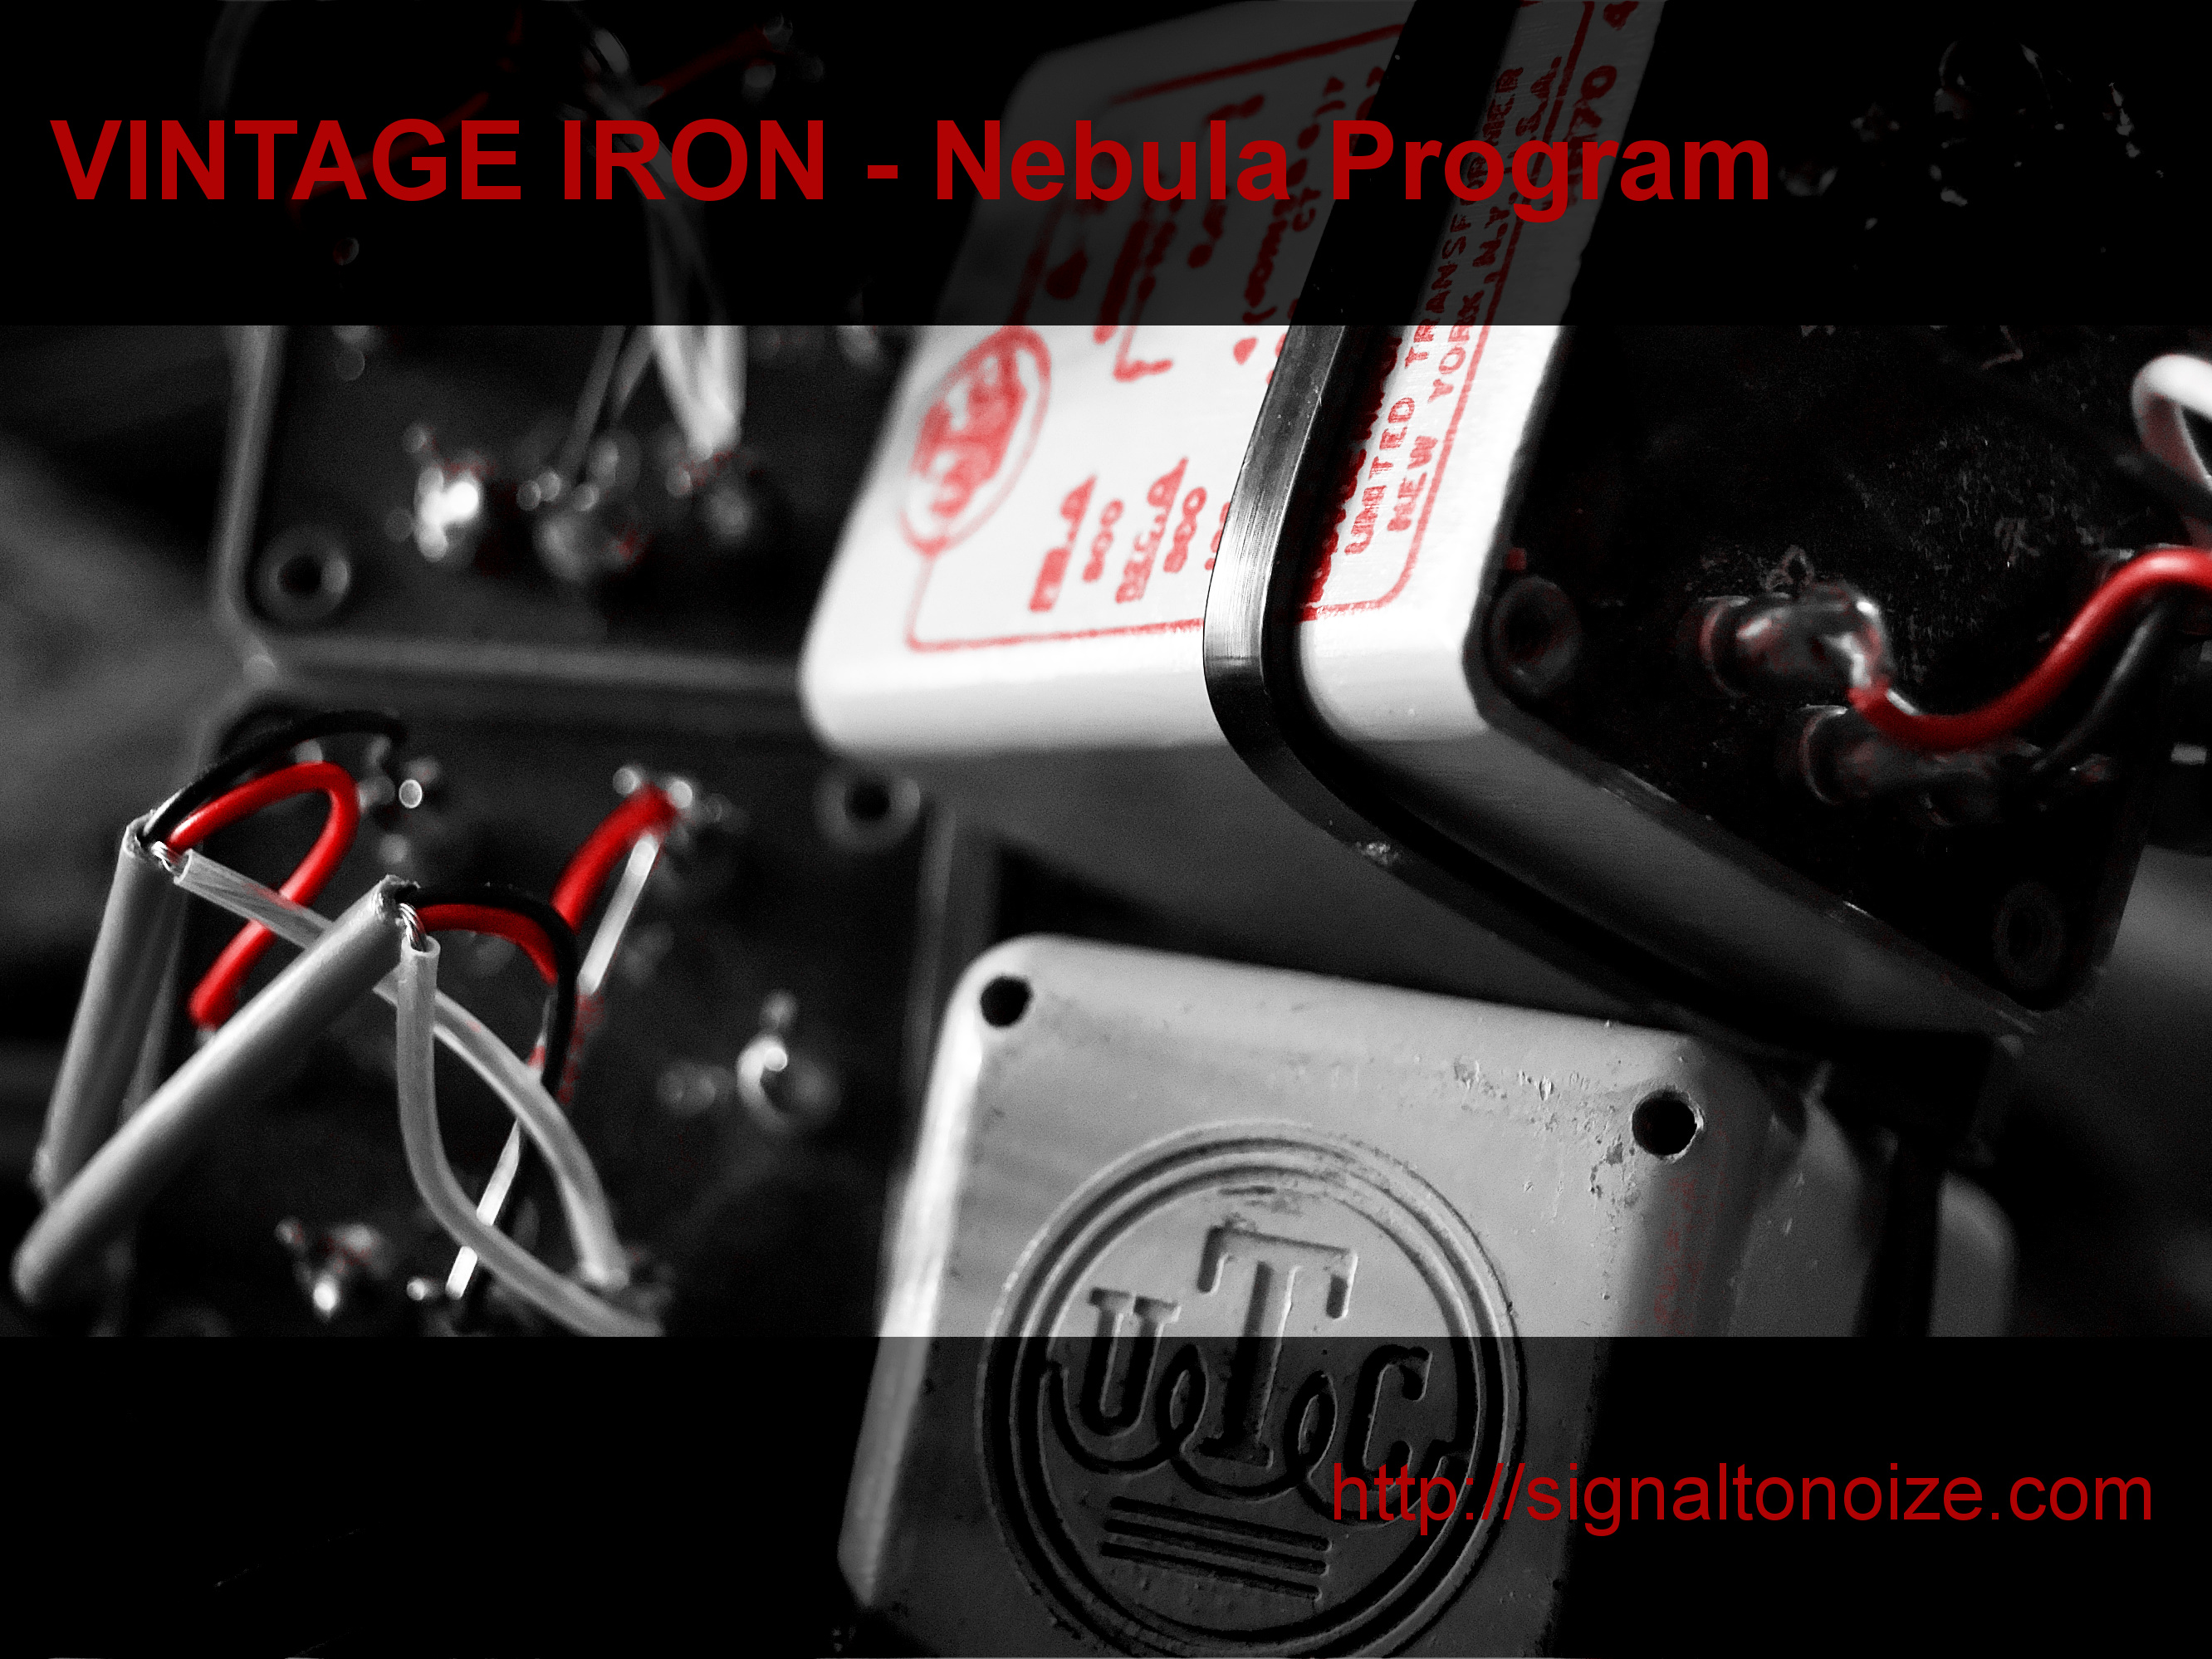 Vintage Iron – Nebula Program